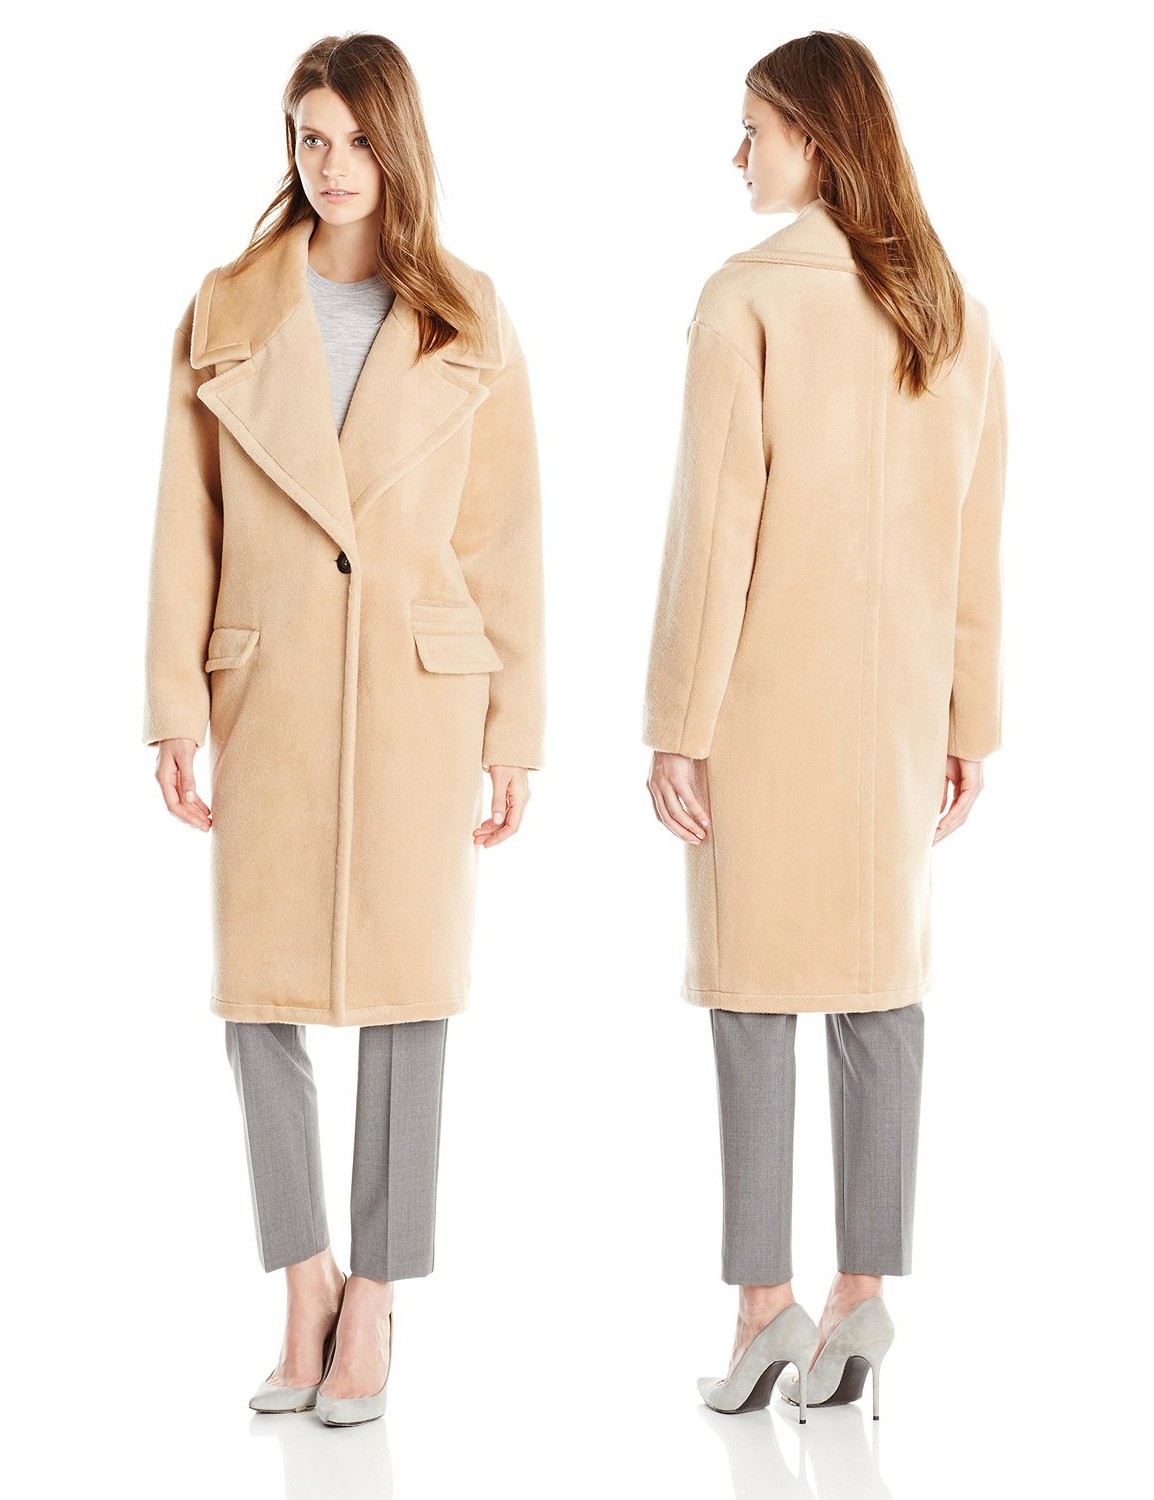 Badgley Mischka Womens Verona Wool-Blend Coat